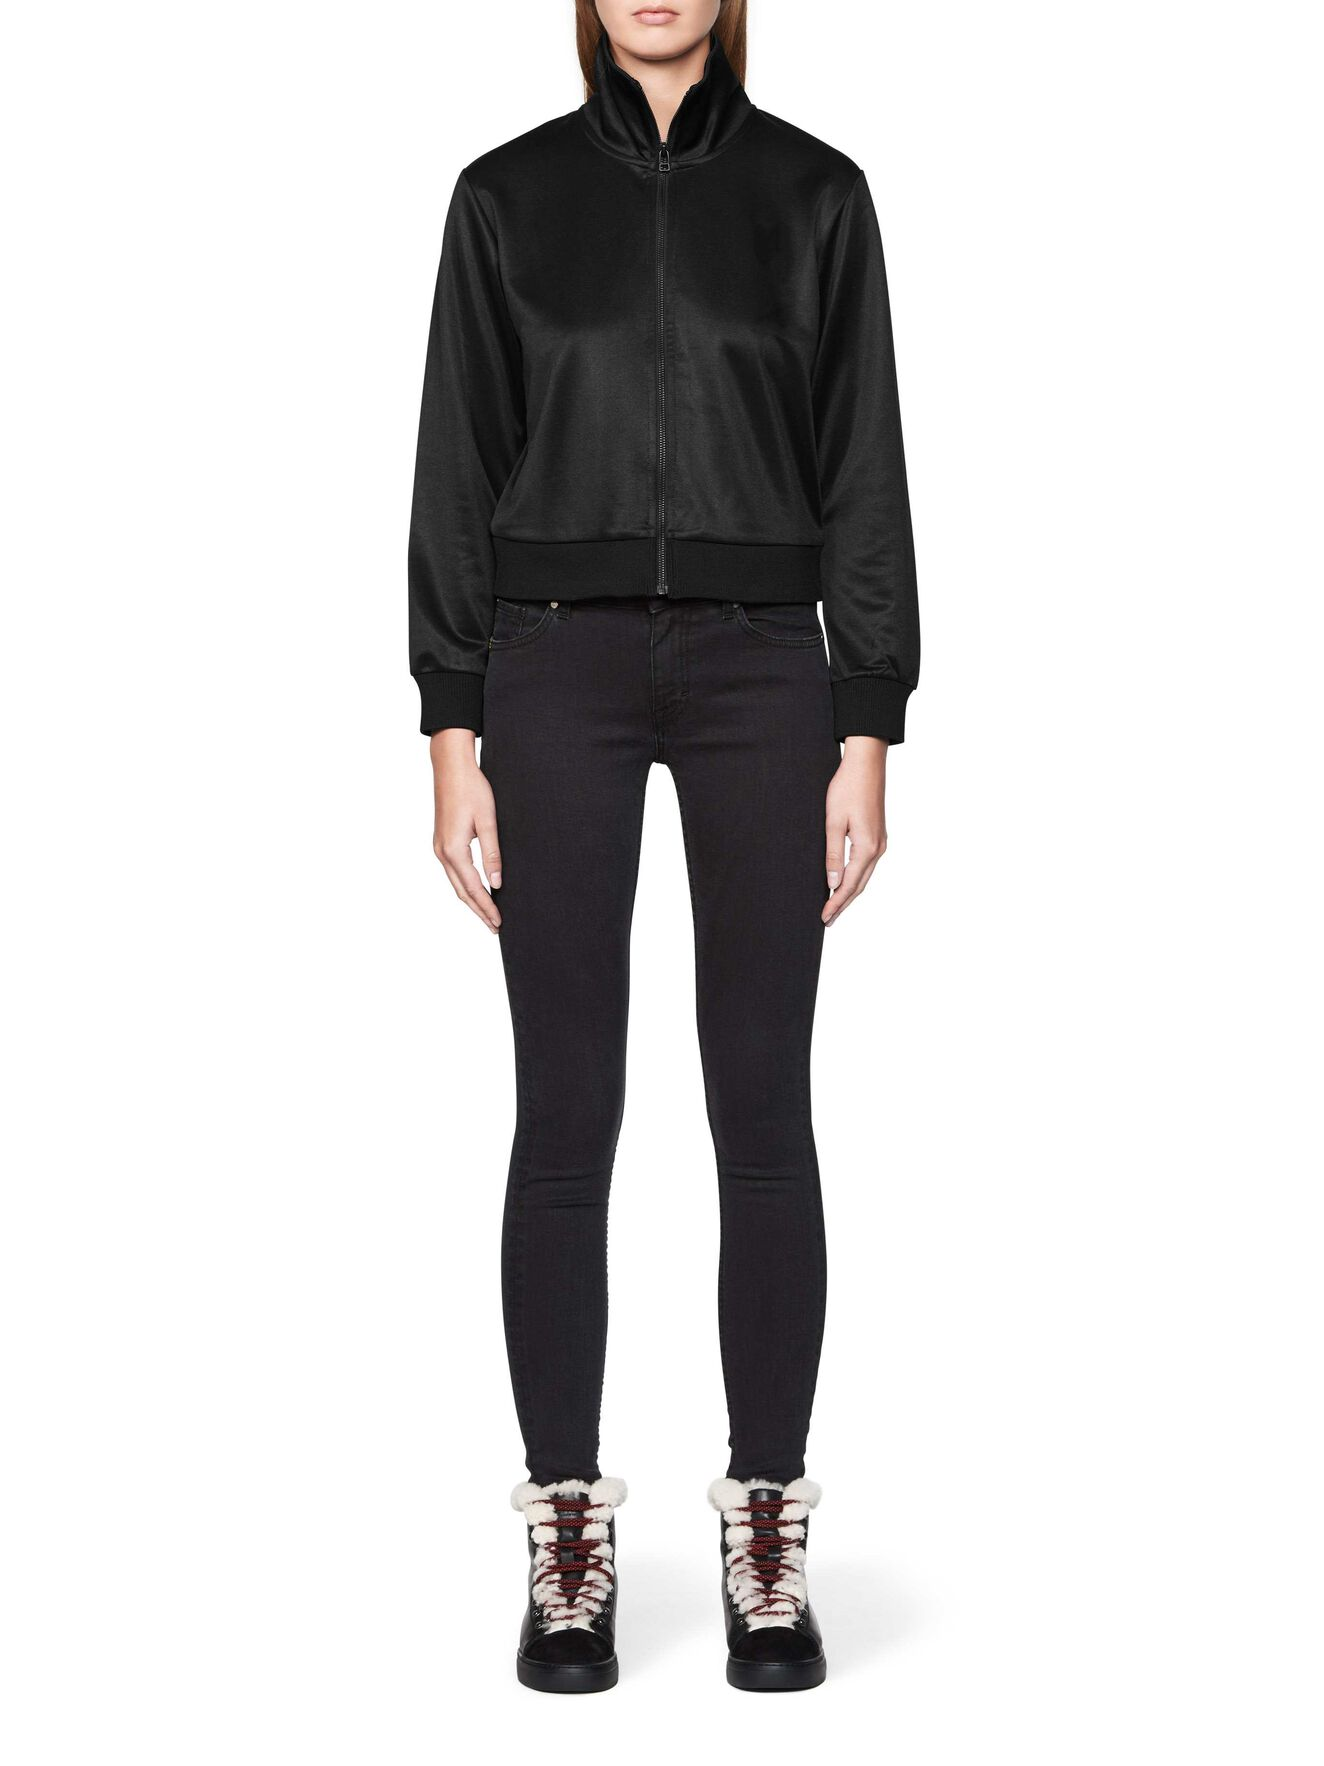 CHIC SWEATSHIRT in Black from Tiger of Sweden